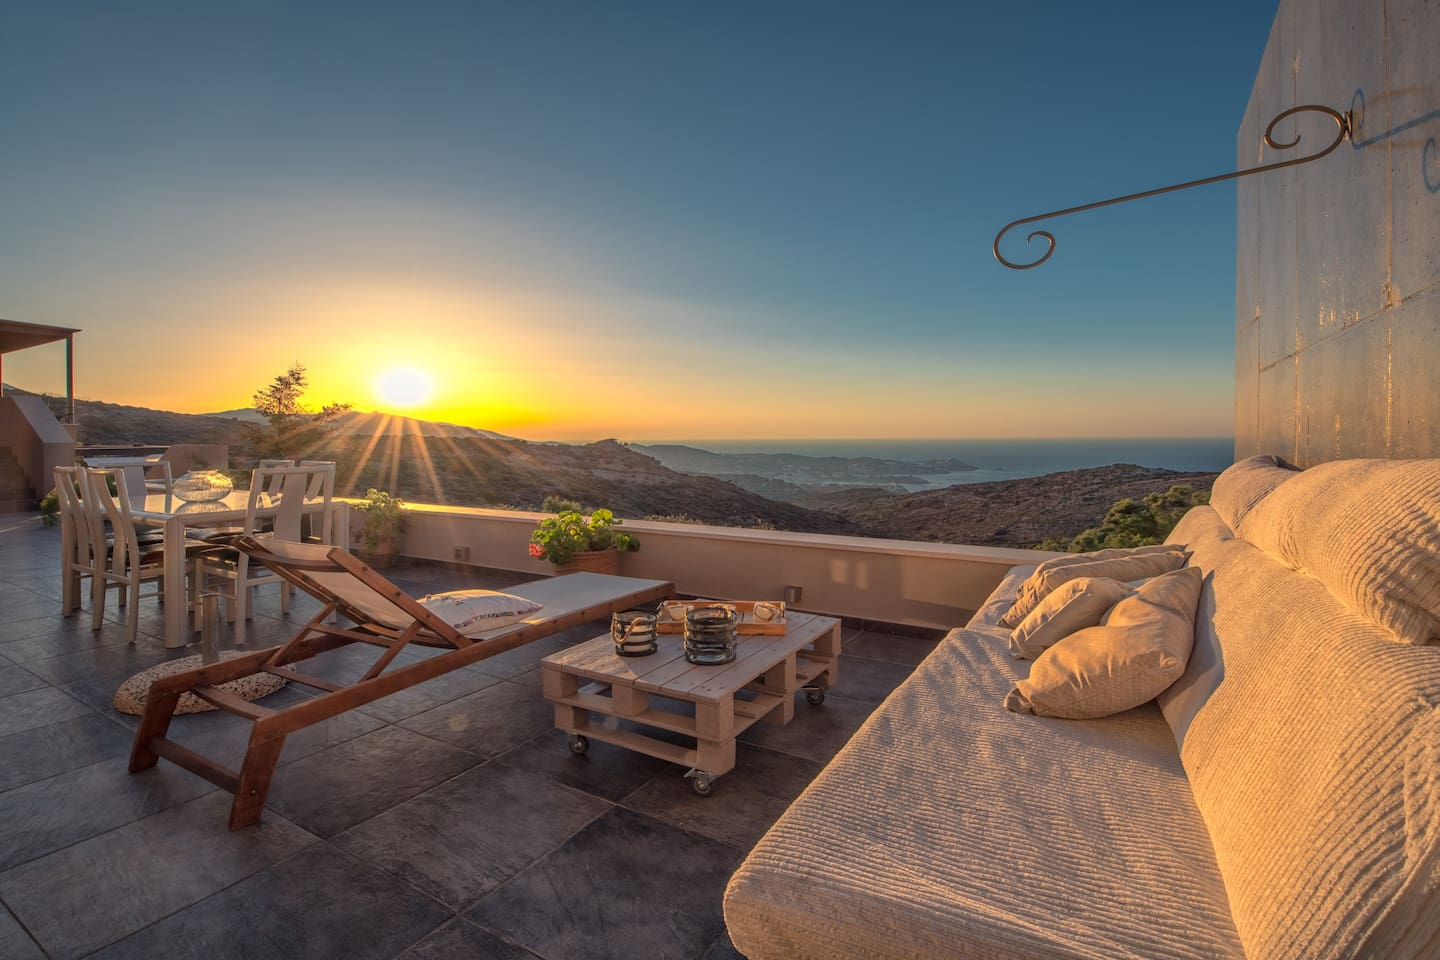 View of the sunset from the villa's patio